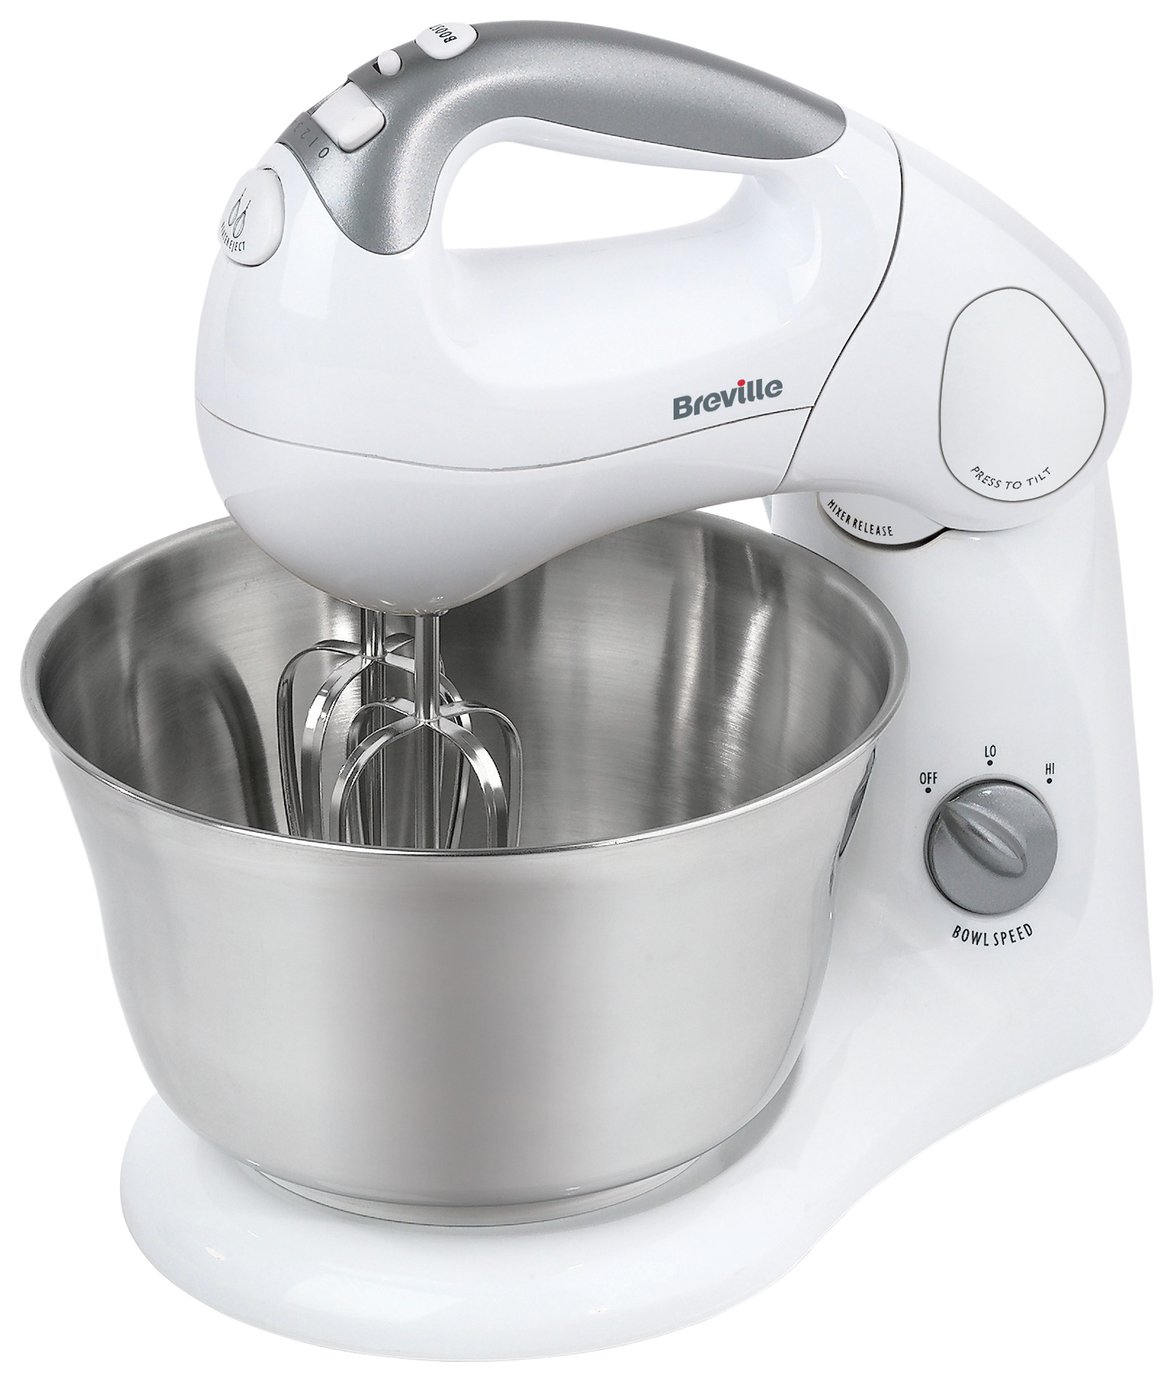 Image of Breville - SHM2 Twin Motor - Hand and Stand Mixer - White